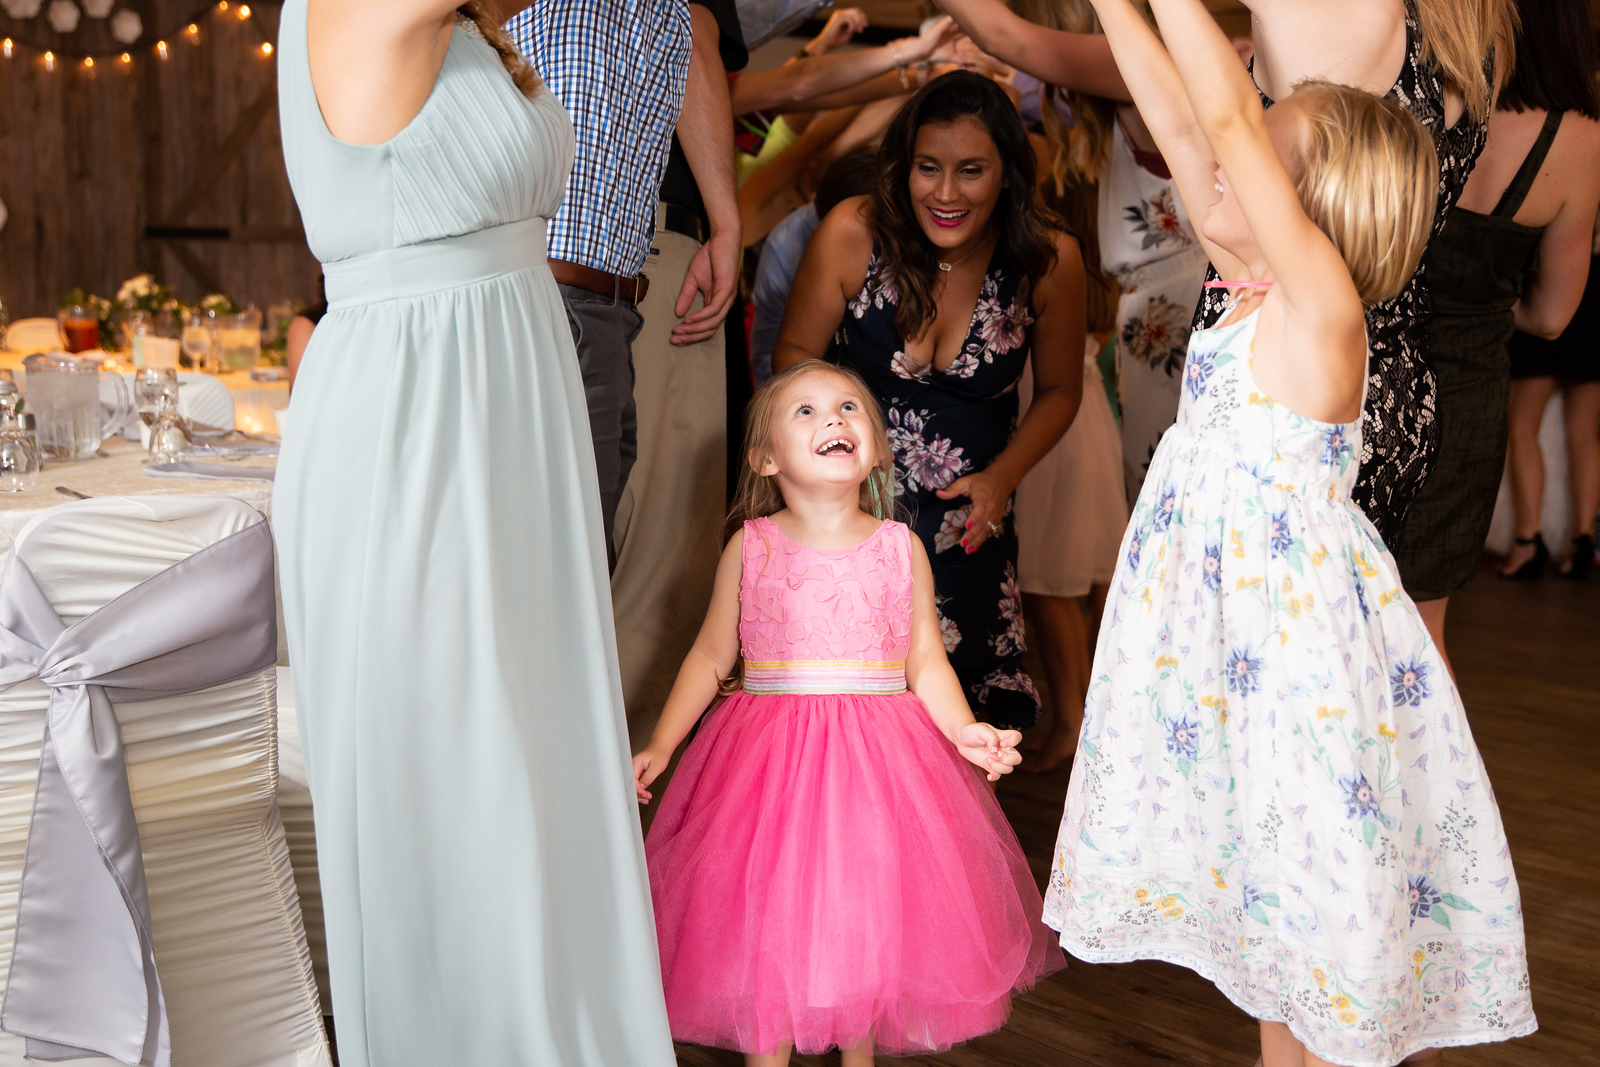 Family has fun dancing at the wedding reception